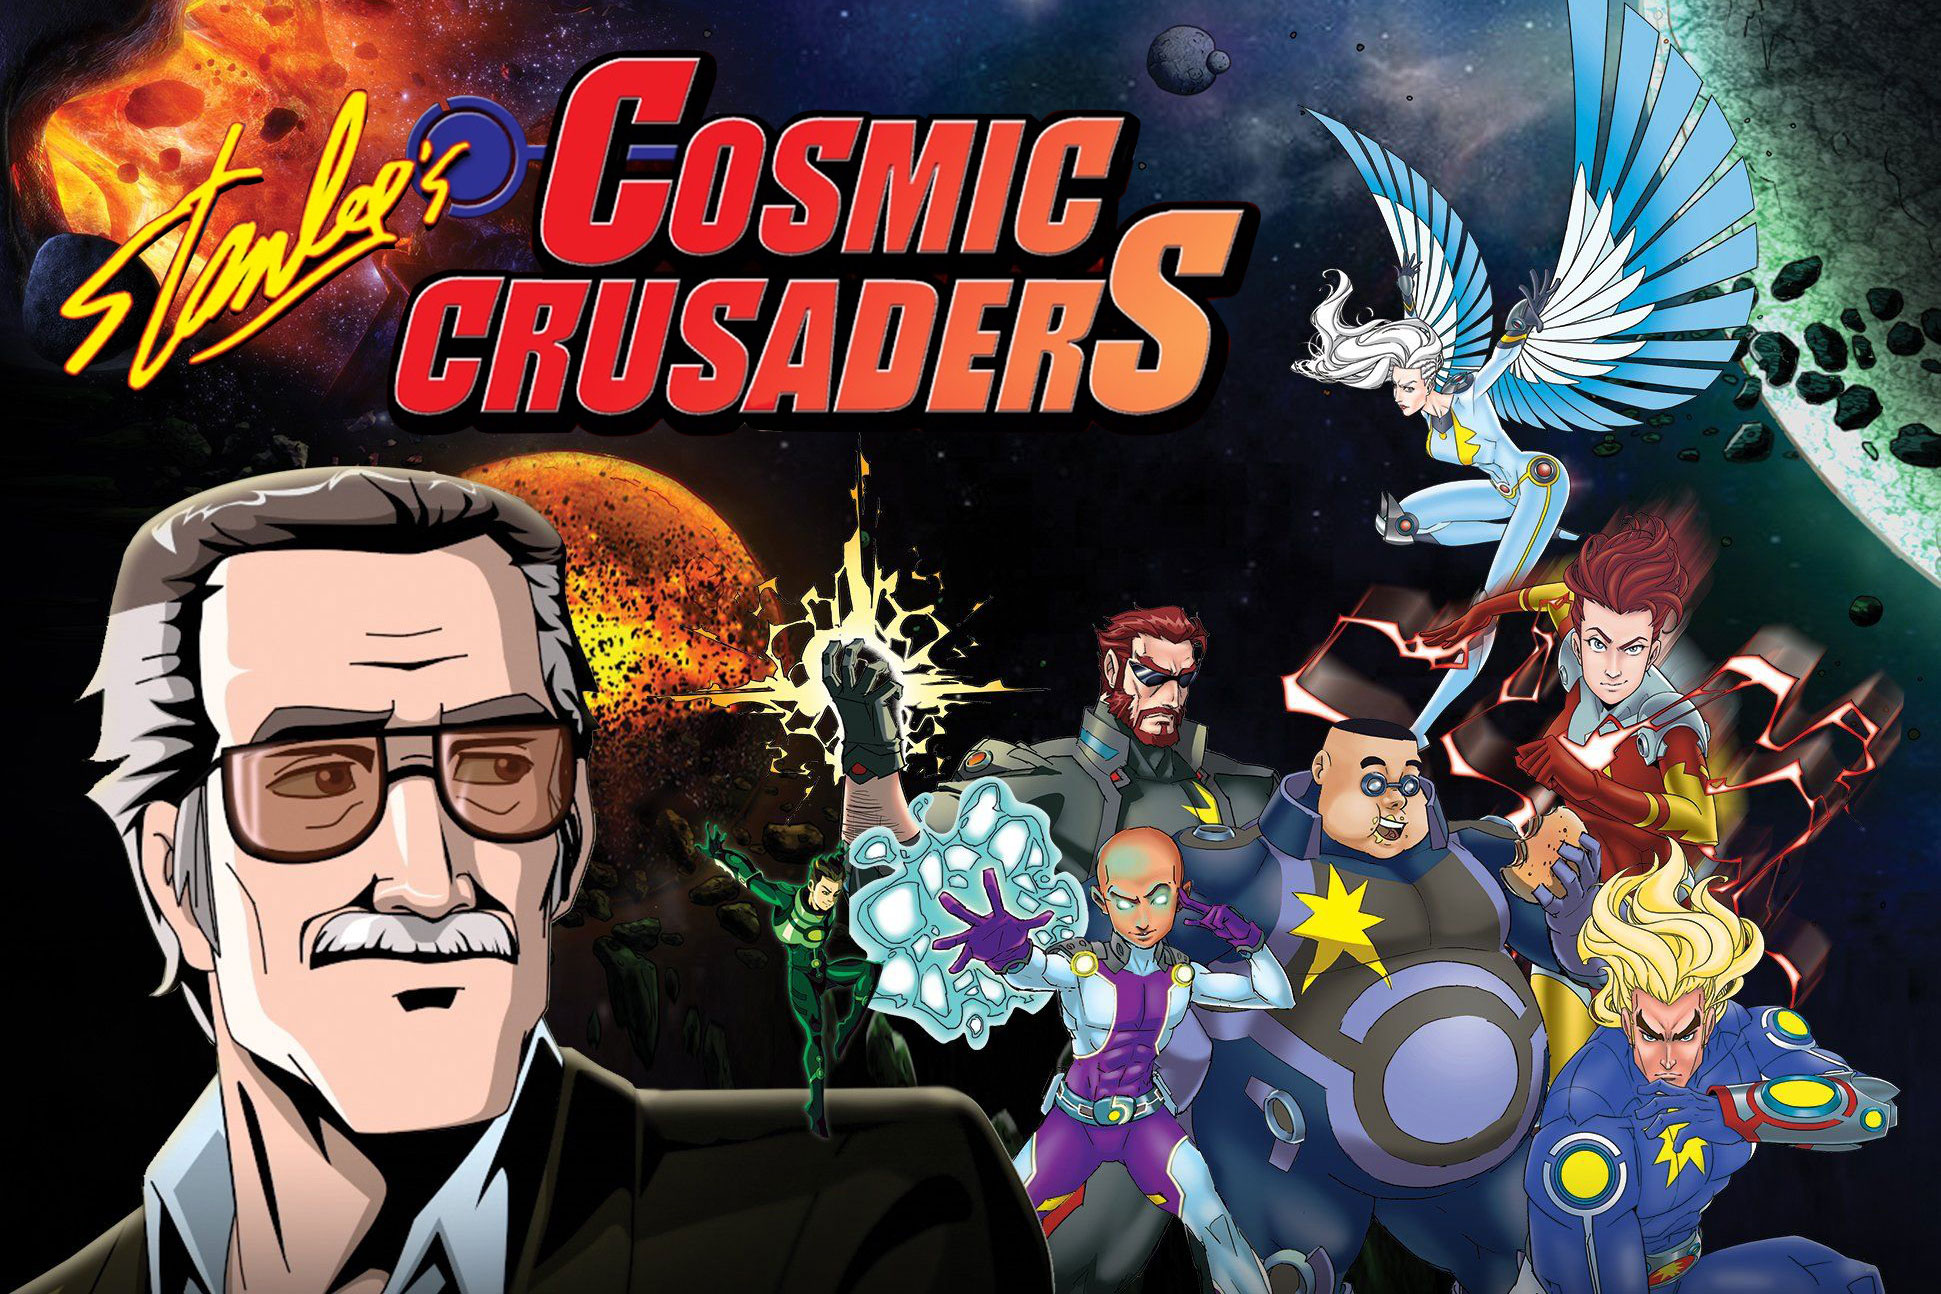 Copy of Stan Lee's Cosmic Crusaders